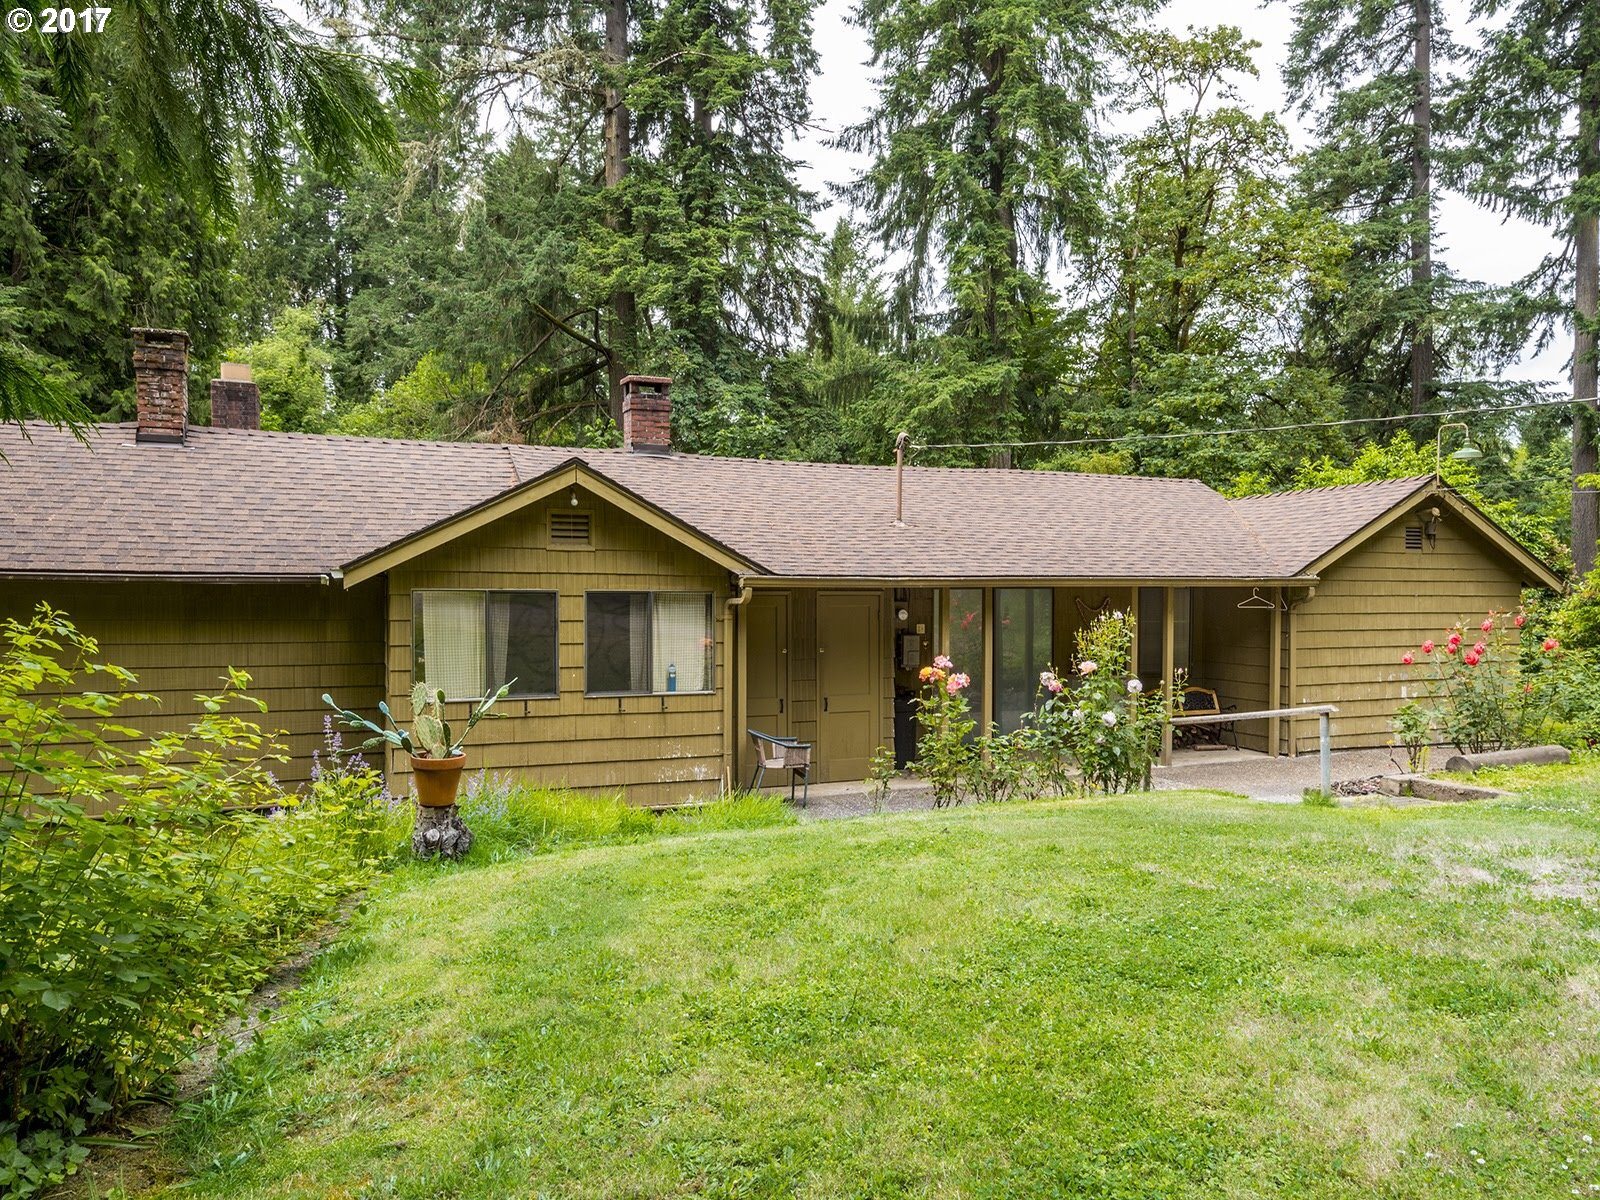 342 SW TUALATIN LOOP, West Linn, OR 97068